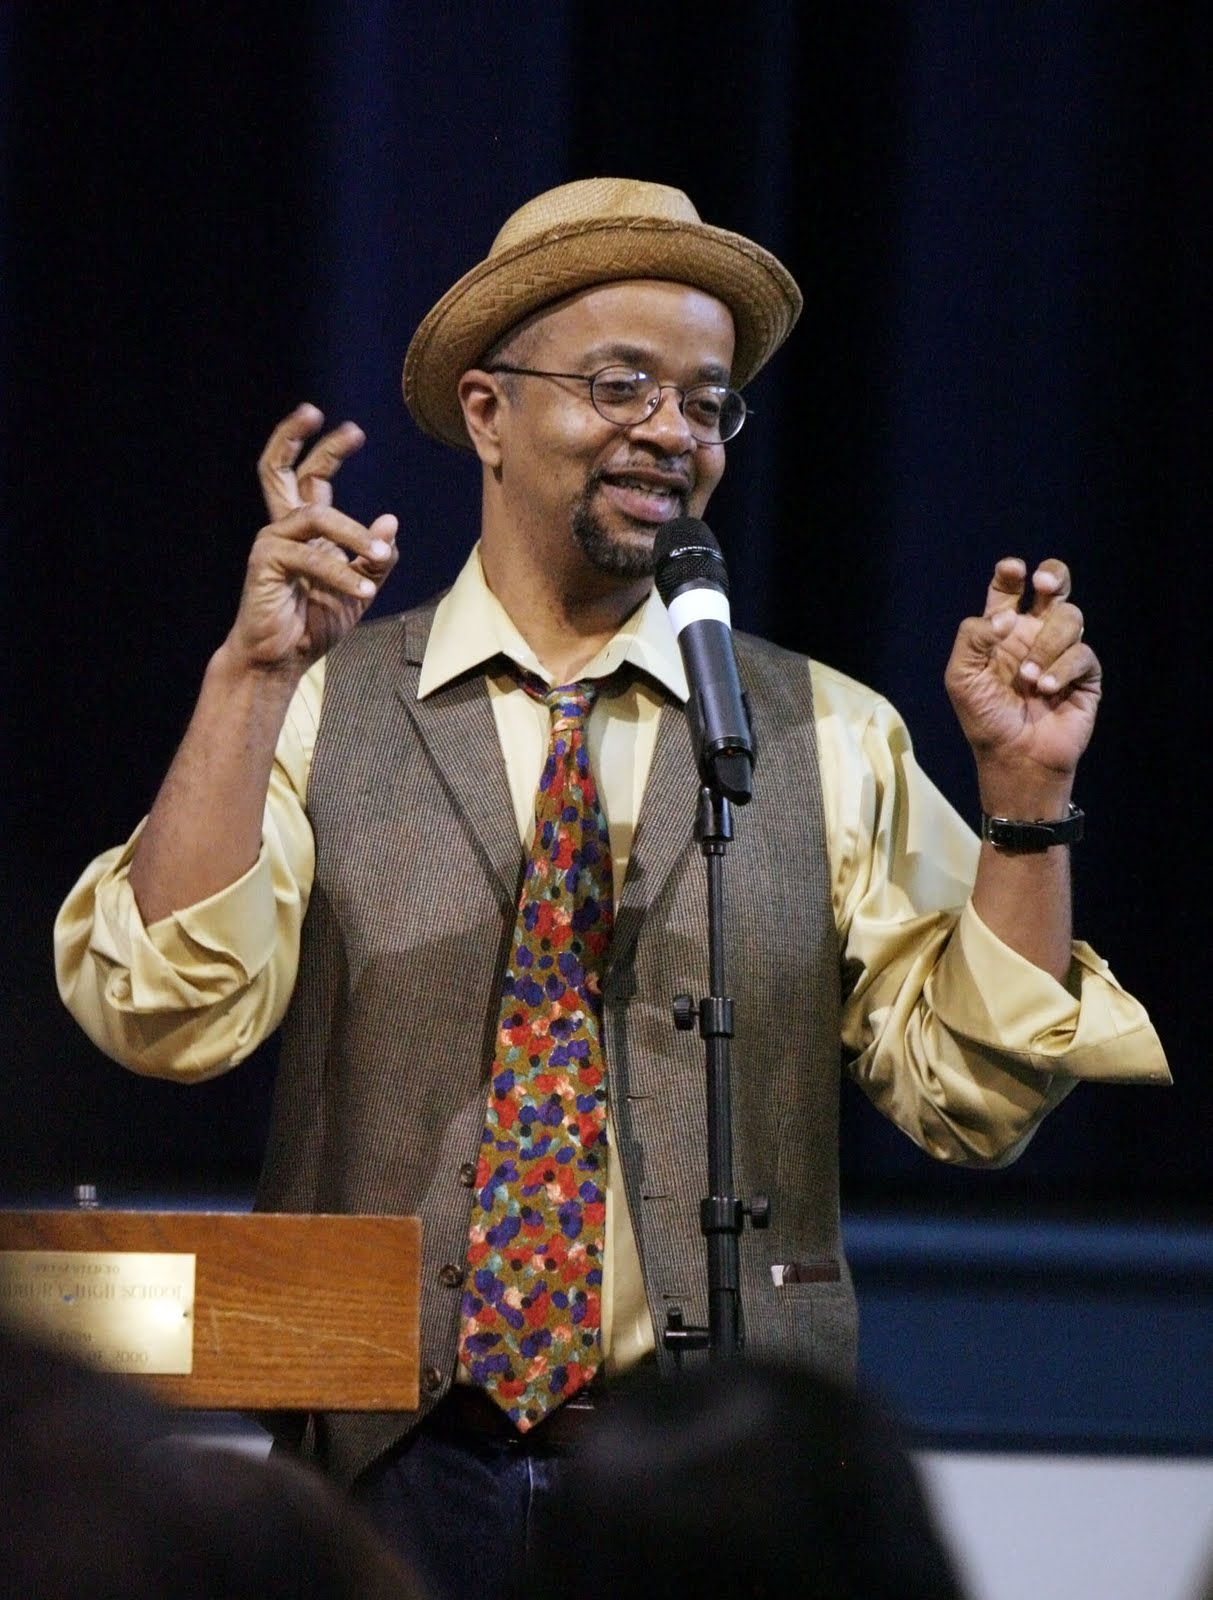 james mcbride Ohio ex-con james mcbride uses his own divine province driver's license and license plates.